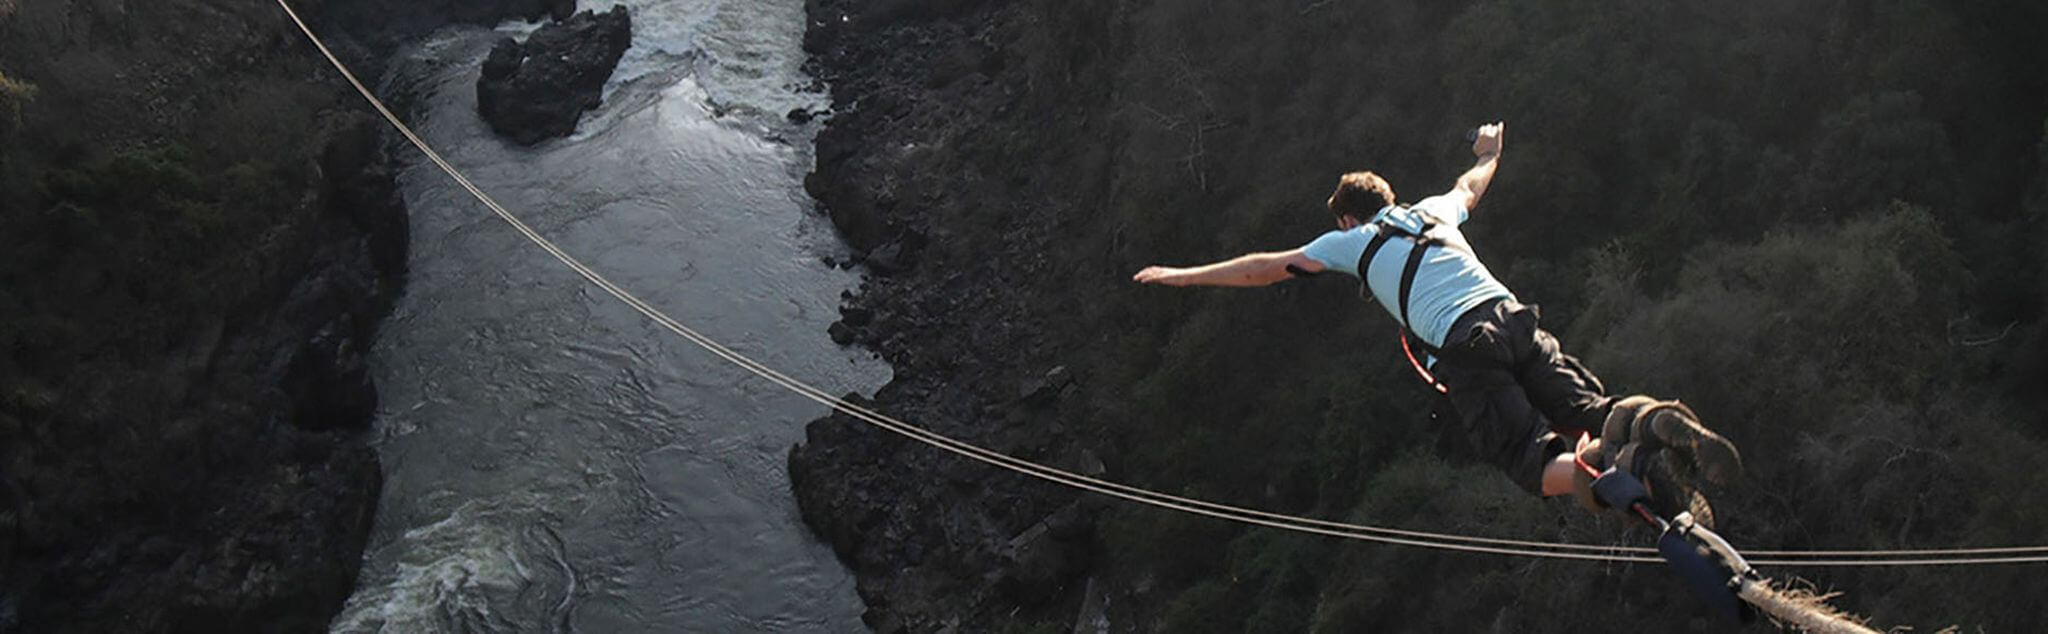 Bungee Jumping in Greater London